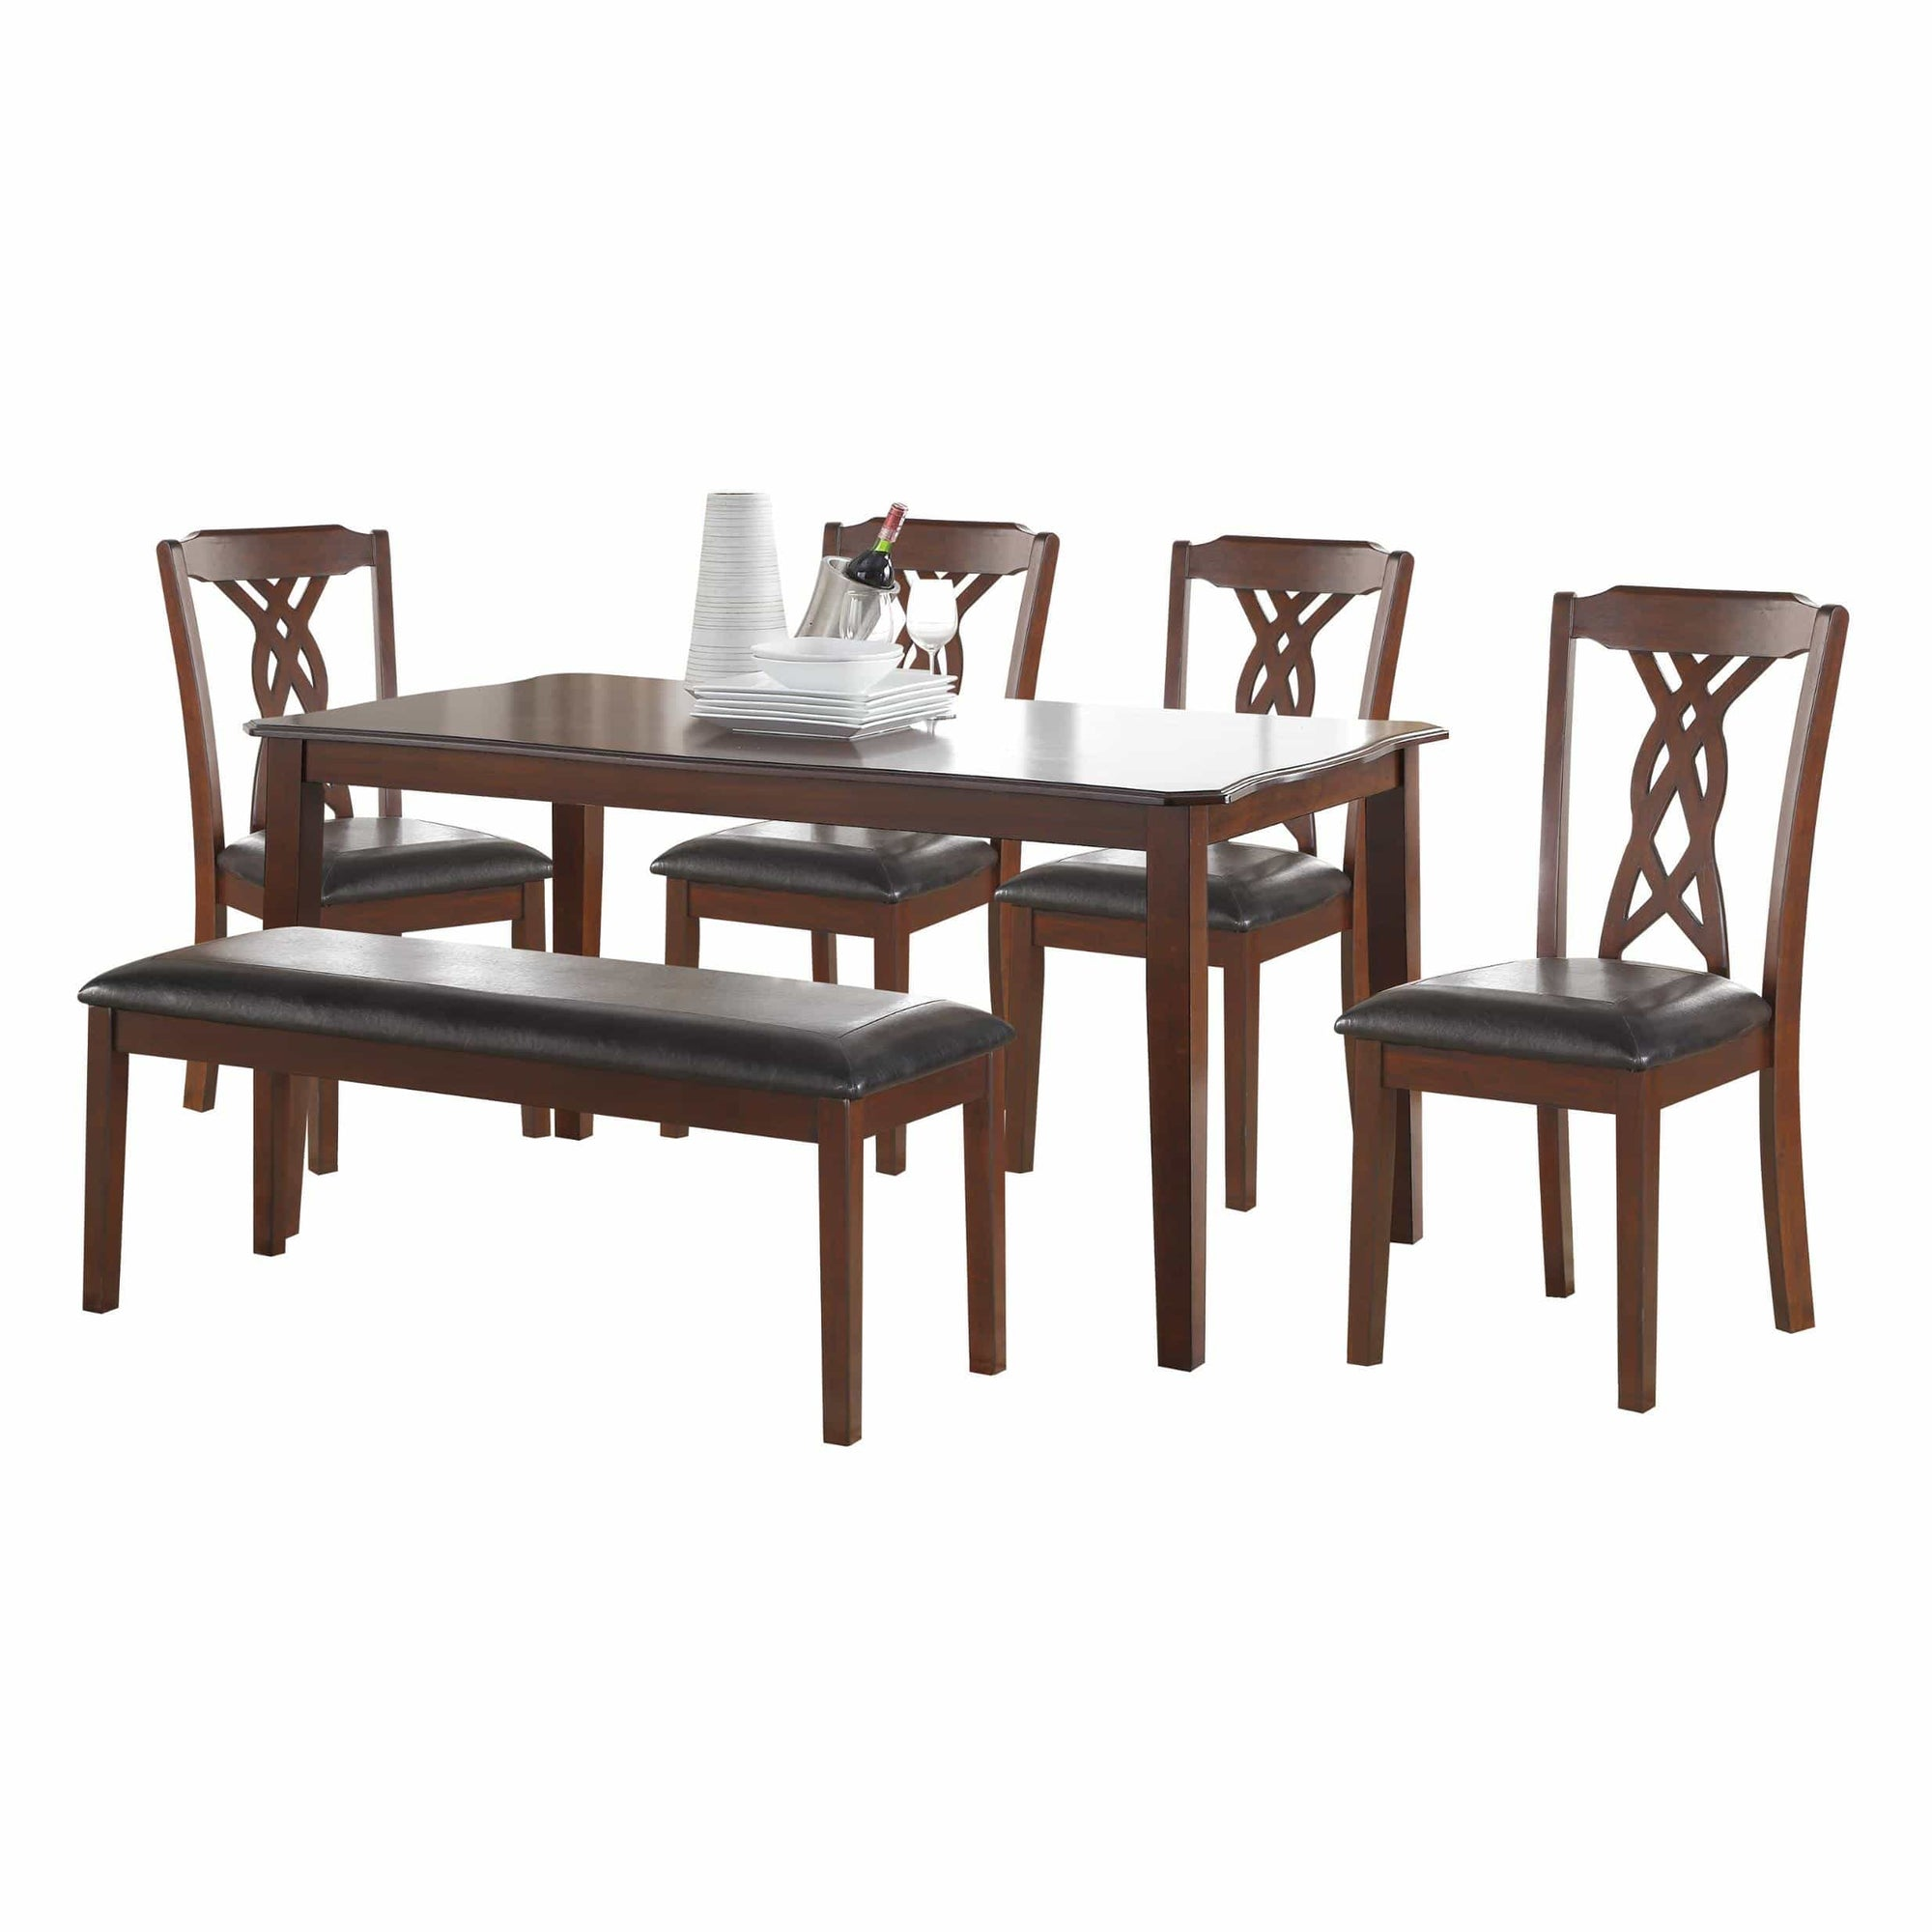 Dining Table sets 6 Piece Dining Set In Black Leatherette And Espresso 614486164042 HR318941